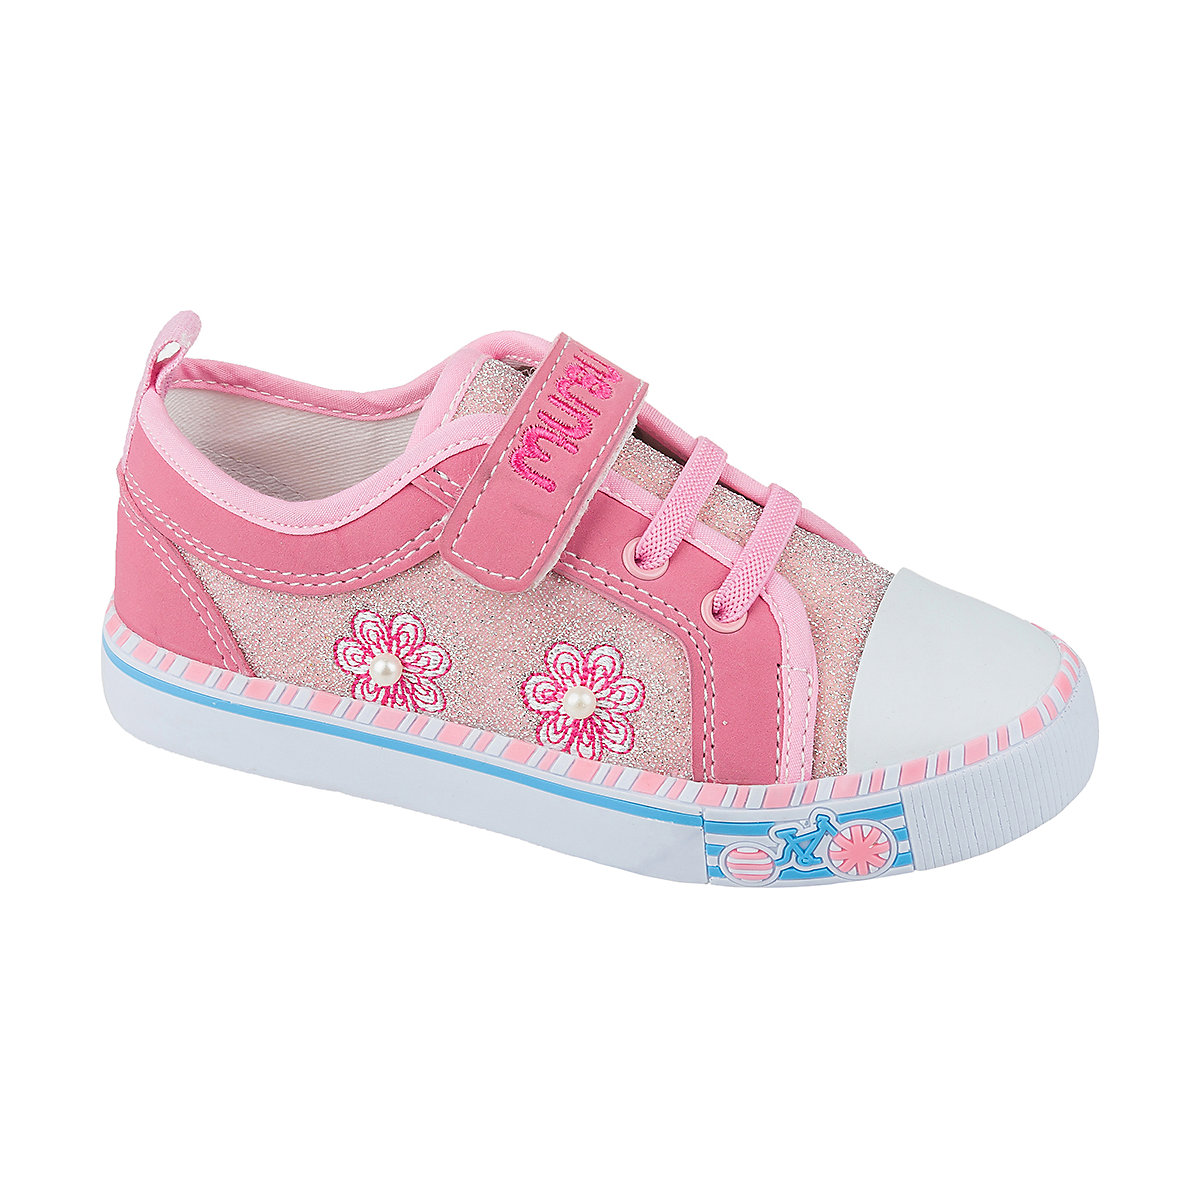 MURSU Children Casual Shoes 10611988 sneakers running shoes for children Pink sport Girls textile sneakers women trainers breathable print flower casual shoes woman 2018 summer mesh low top shoes zapatillas deportivas